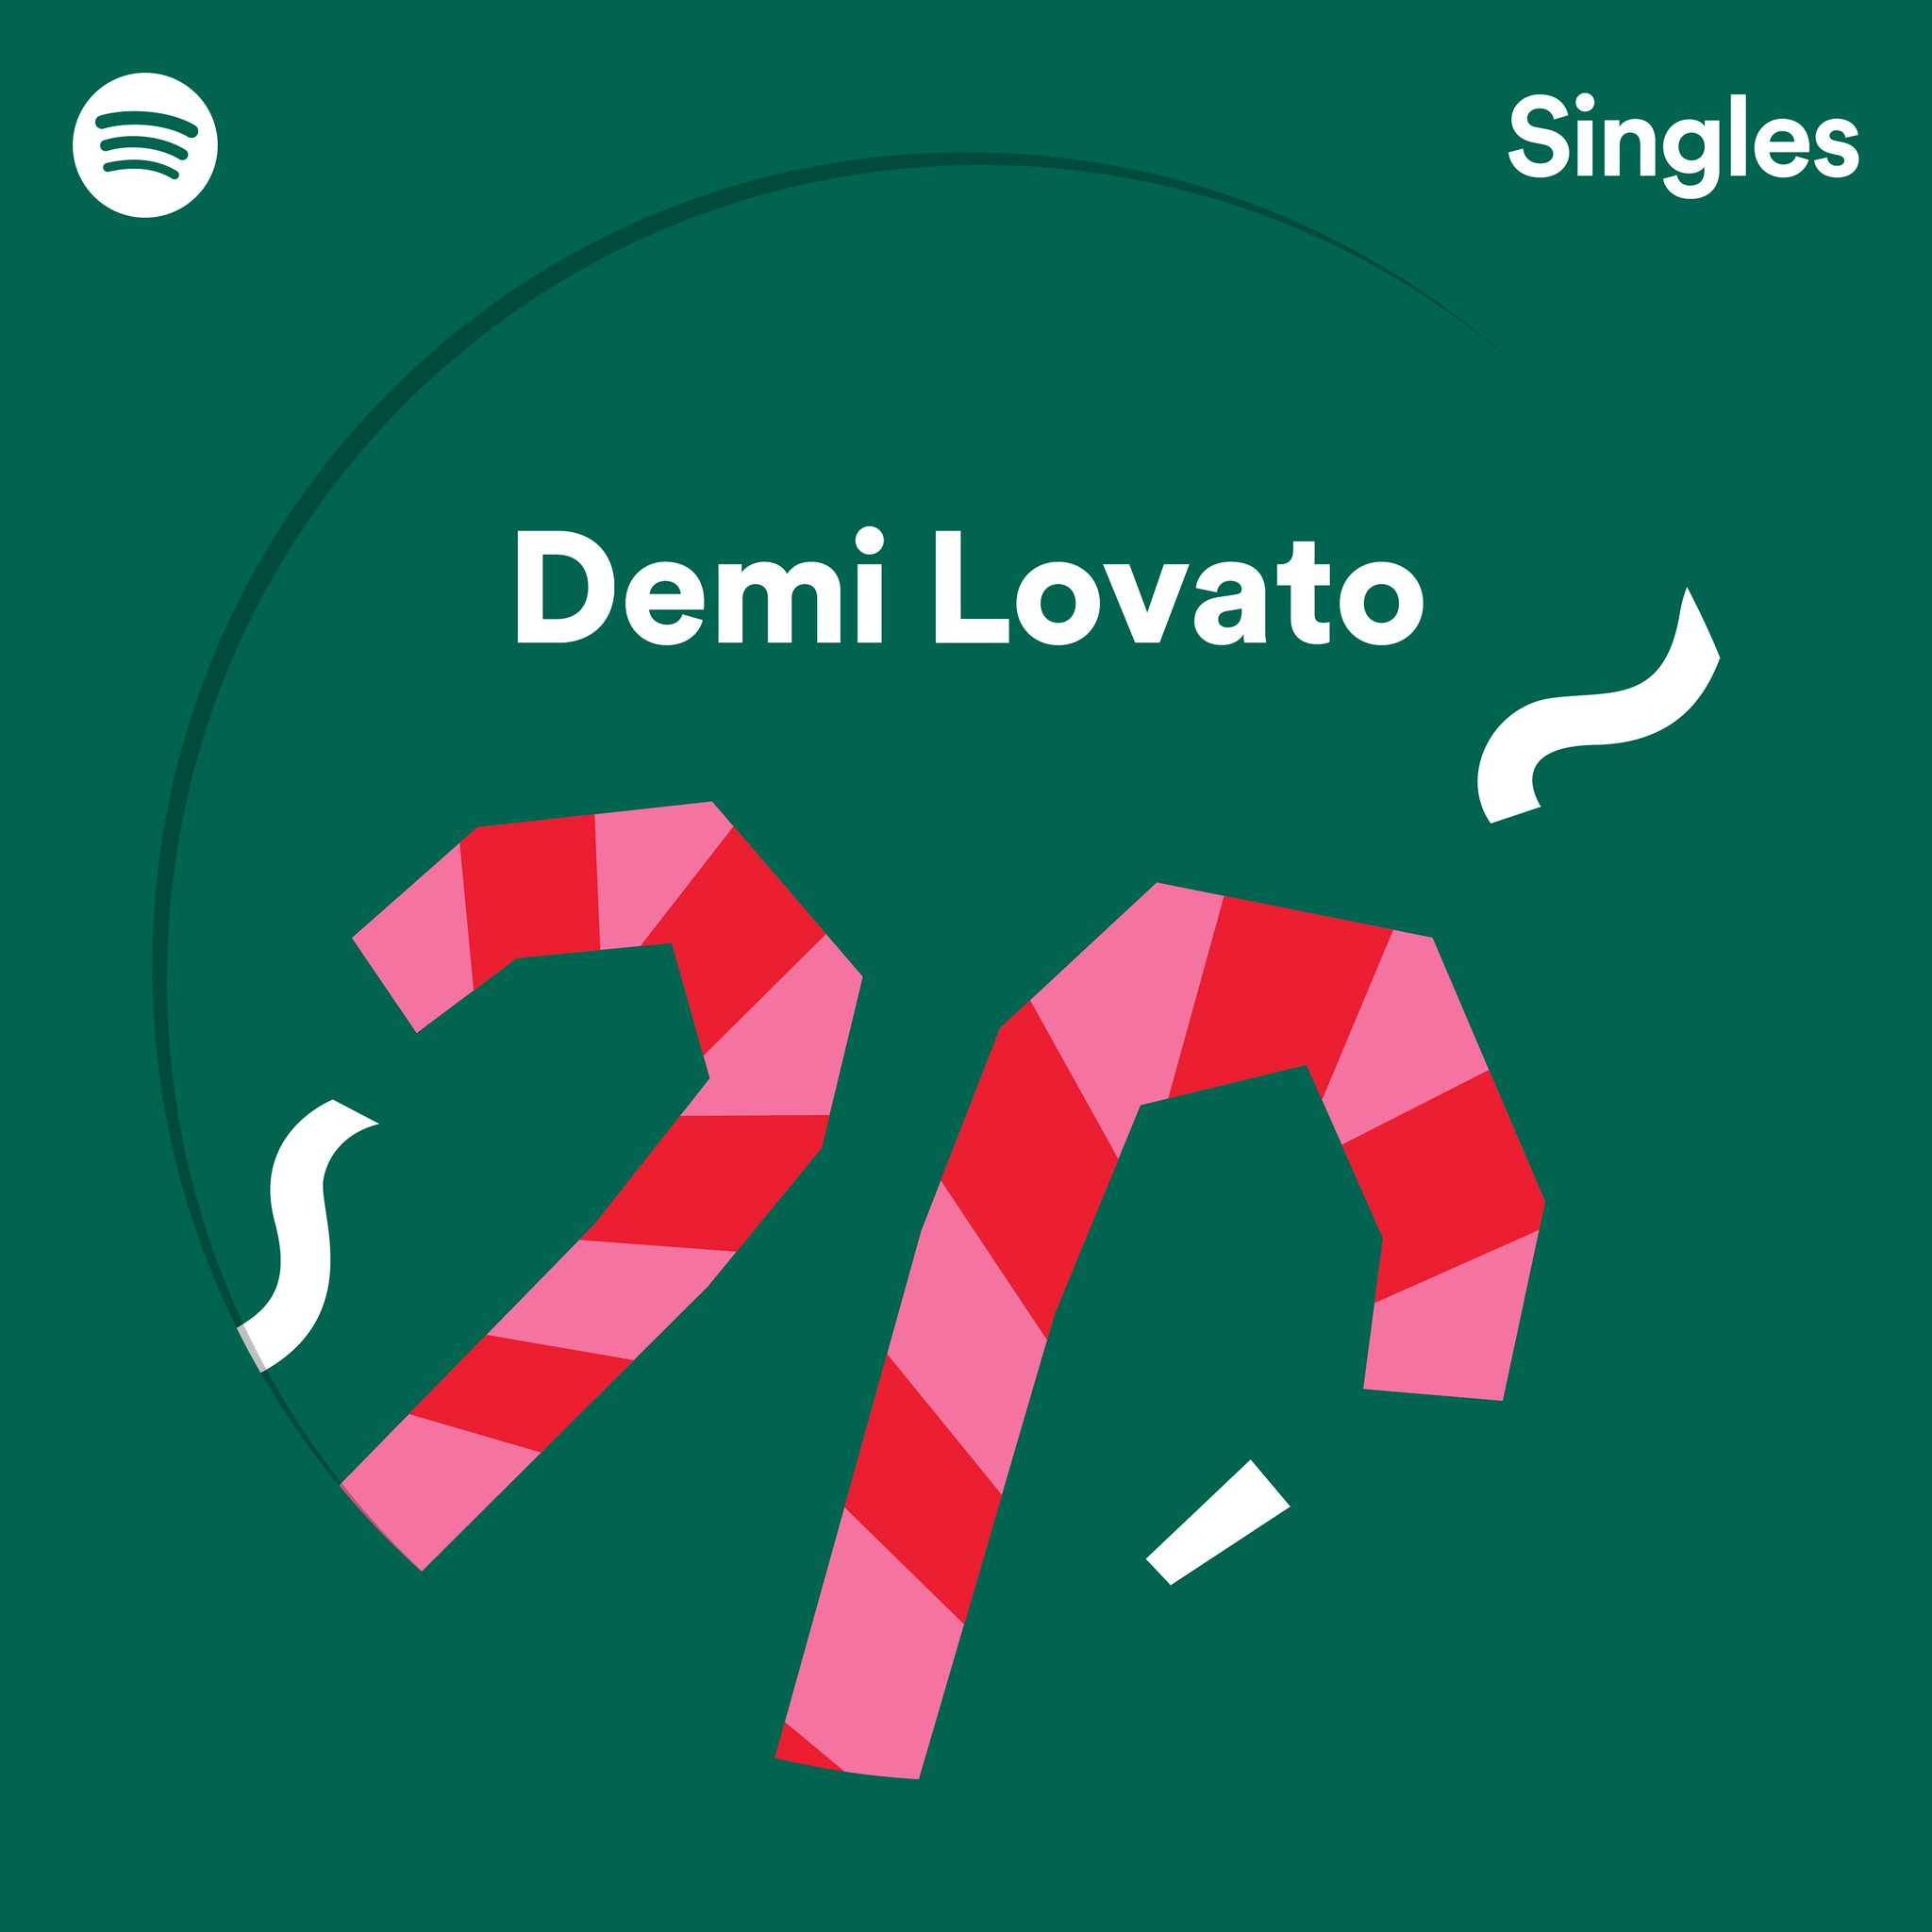 A little something for your Holiday playlists ������ @Spotify https://t.co/oP3sOTF0M8 https://t.co/5t7gfV57aj